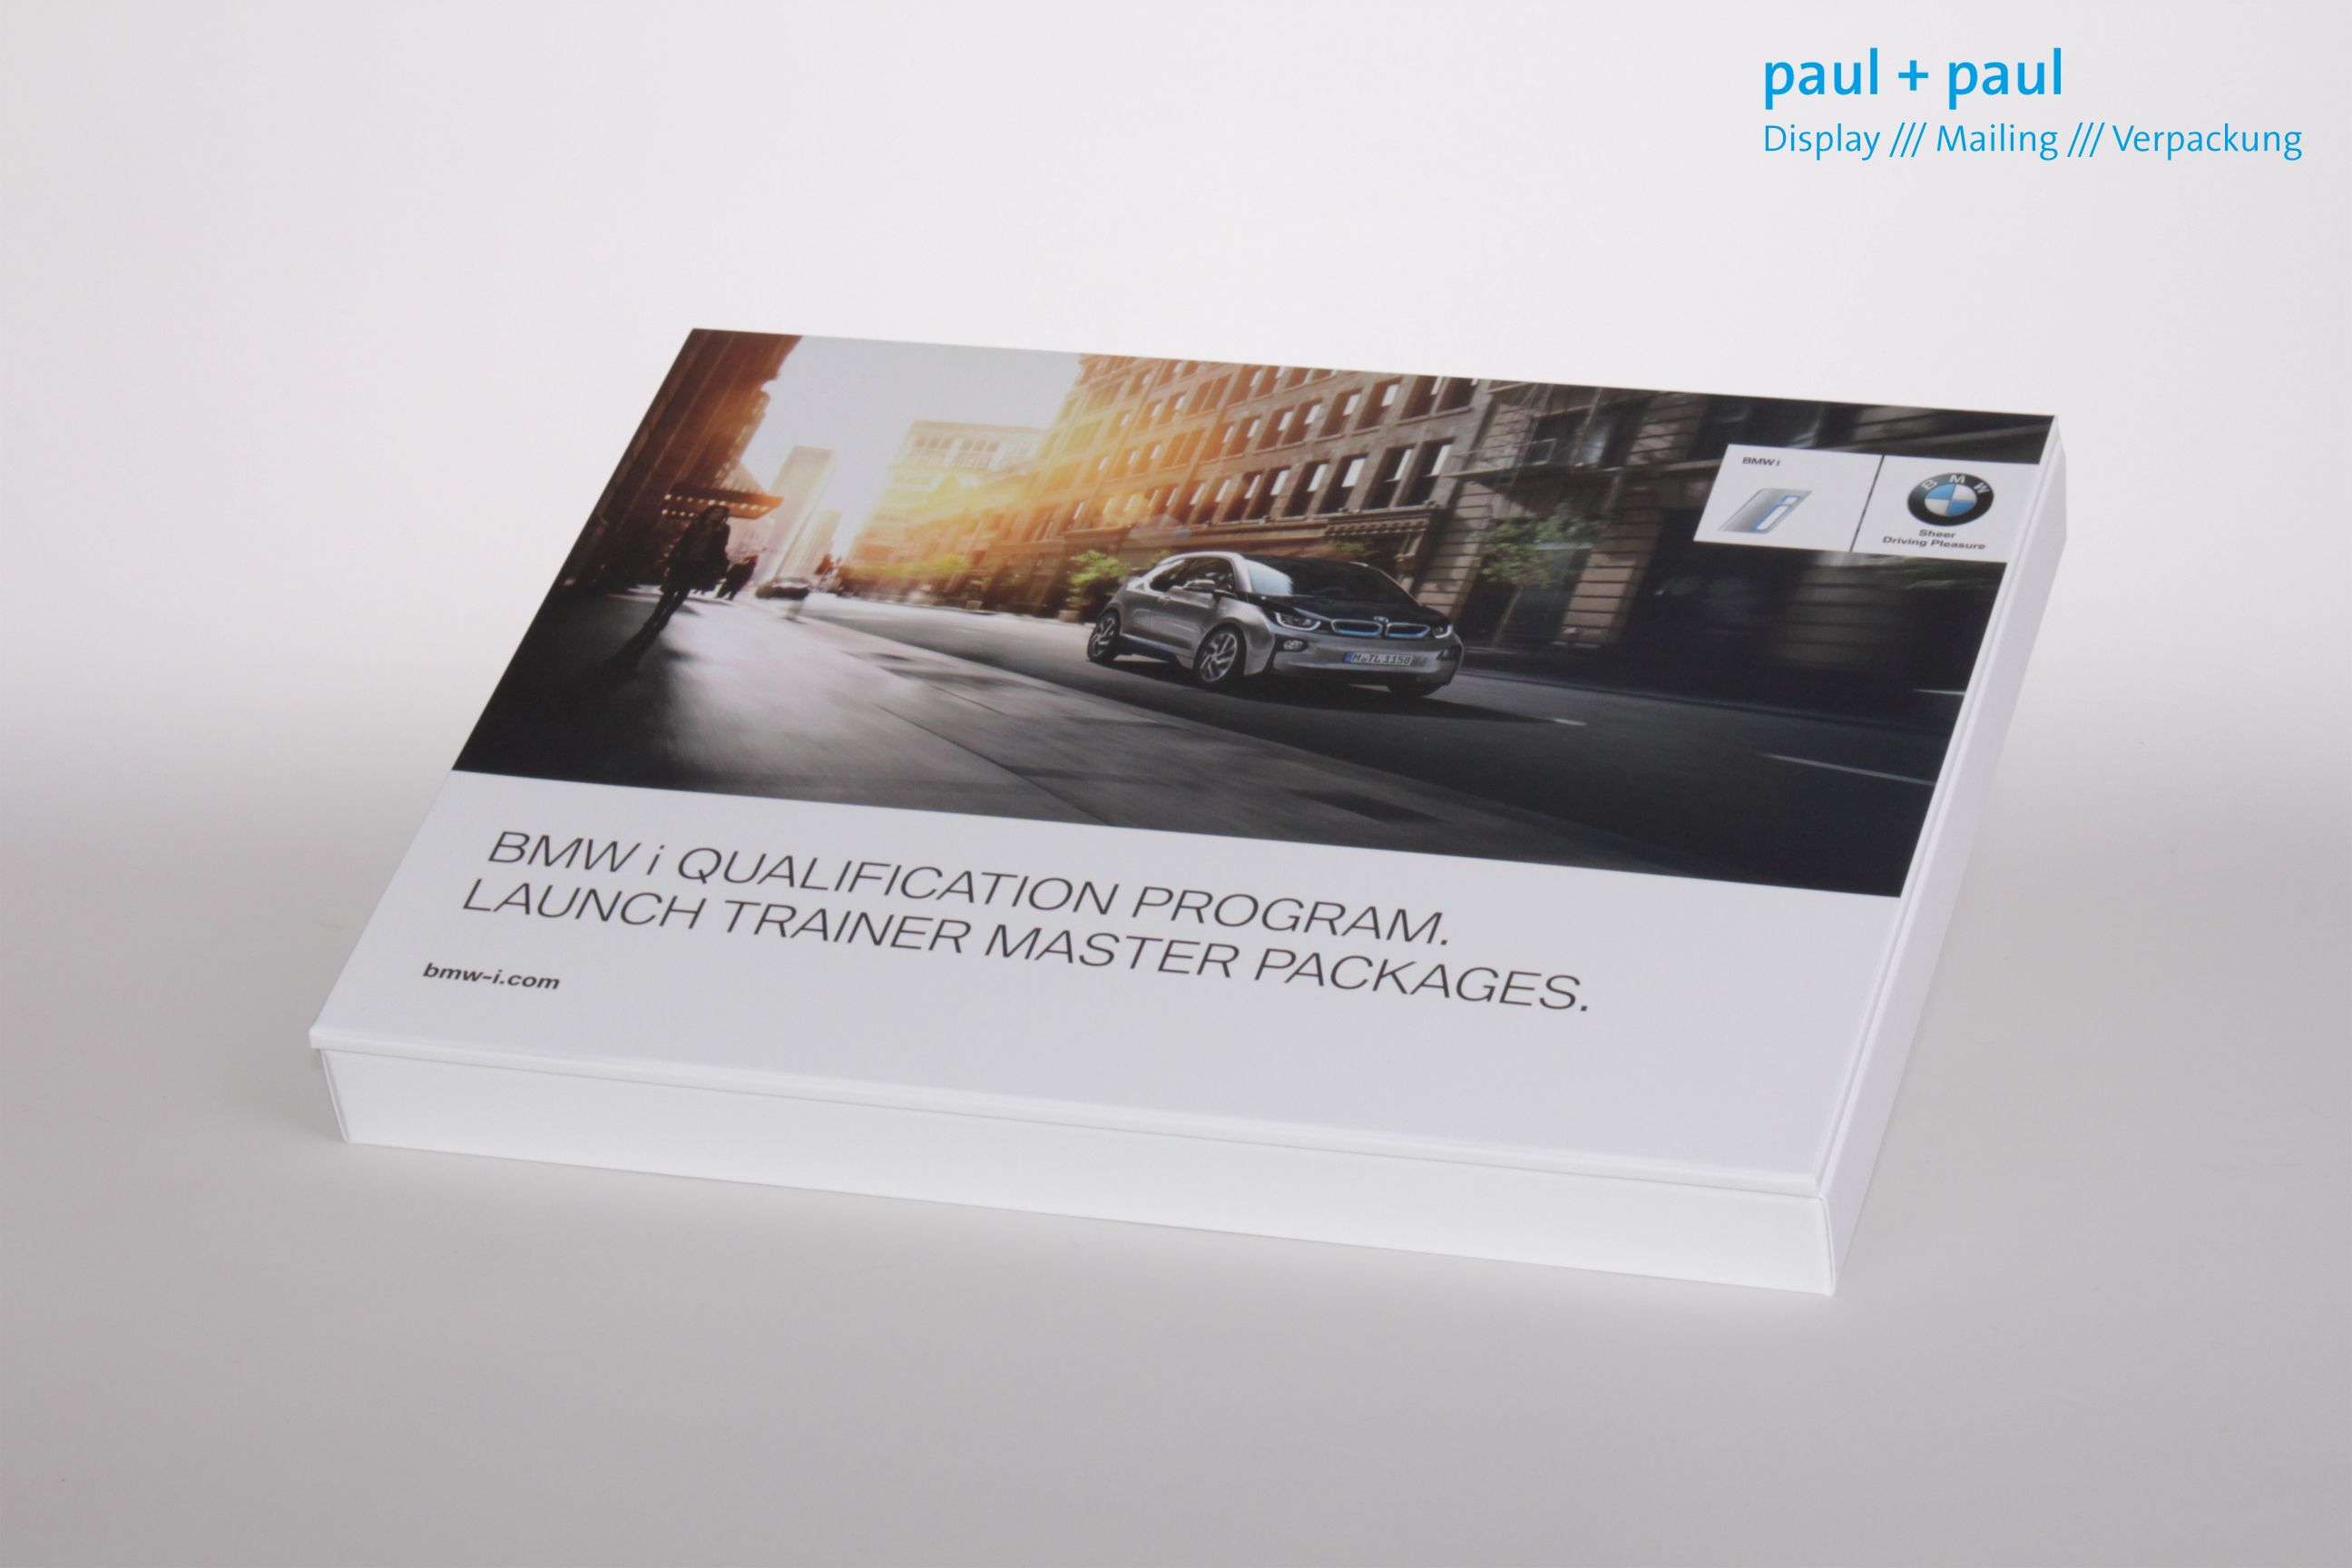 Paul + Paul GmbH & Co. KG